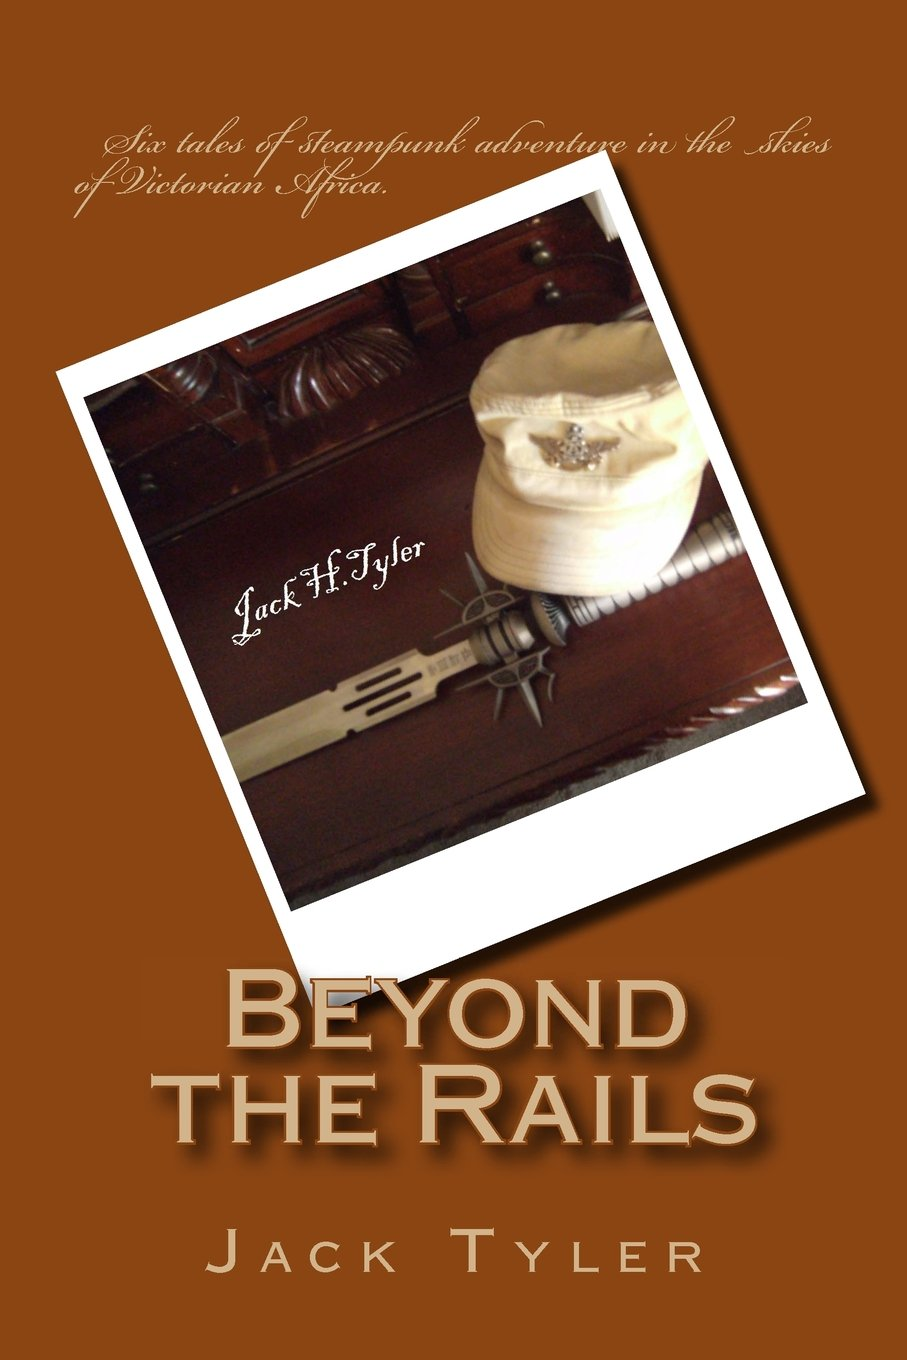 Beyond the Rails: Six tales of steampunk adventure on the African frontier (Volume 1) ebook